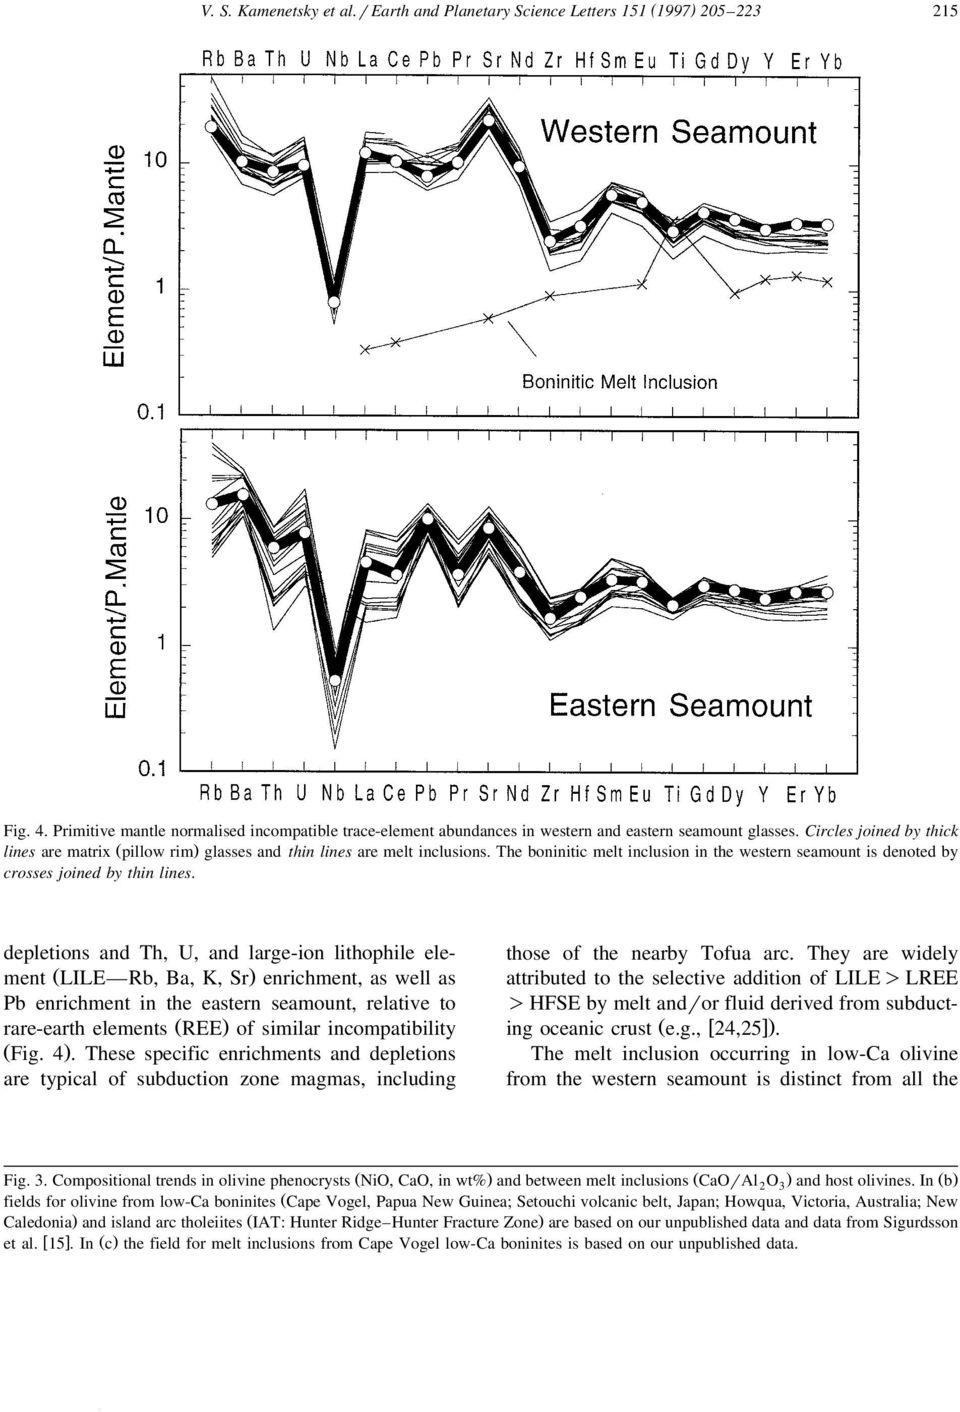 depletions and Th, U, and large-ion lithophile element Ž LILE Rb, Ba, K, Sr. enrichment, as well as Pb enrichment in the eastern seamount, relative to rare-earth elements Ž REE.